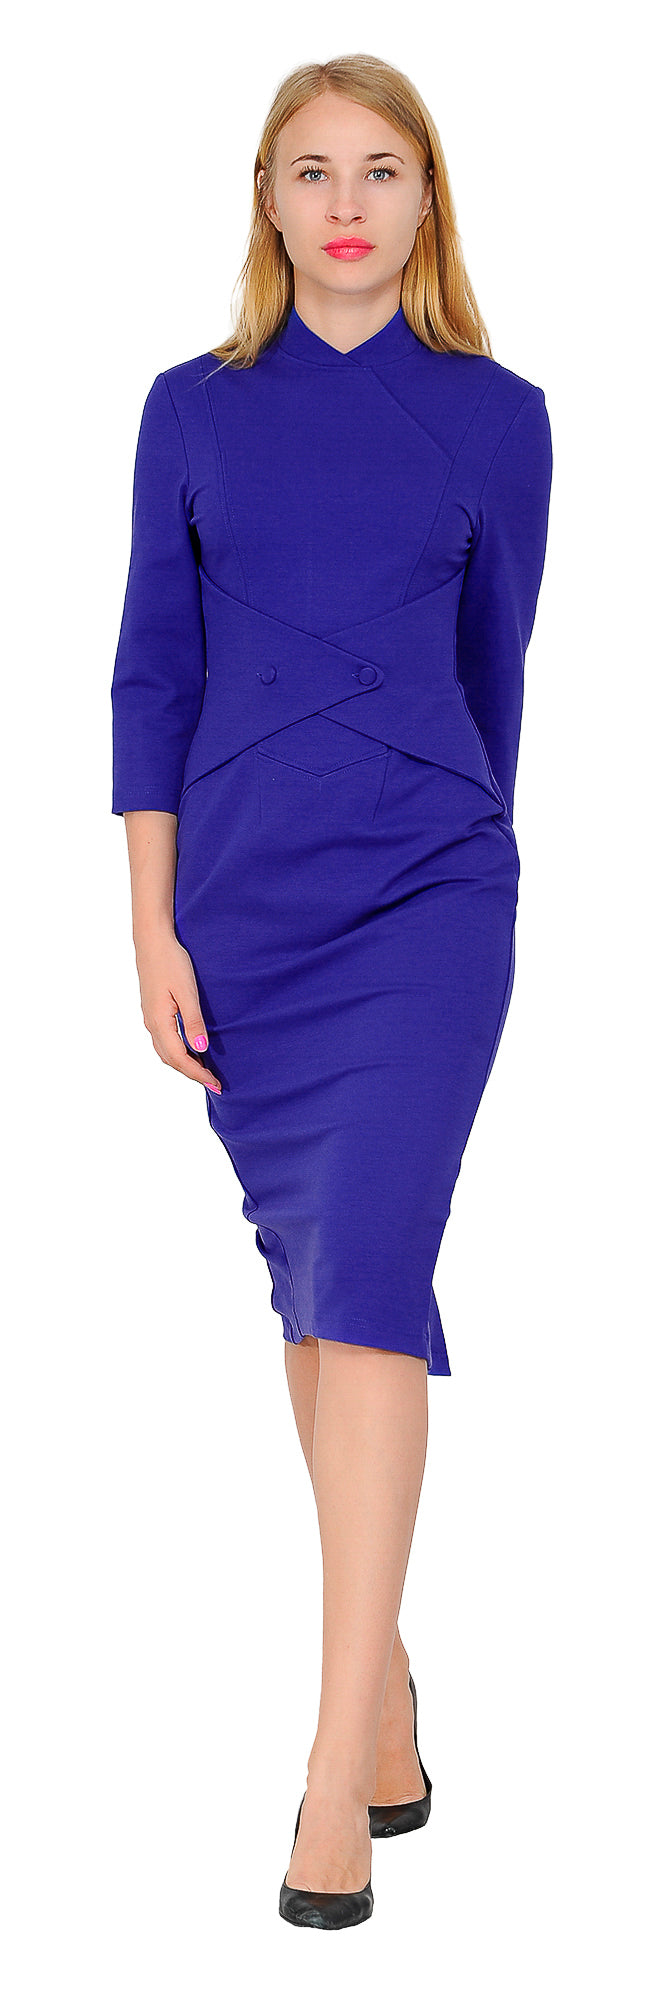 Women's Vintage Retro 1960s long sleeve high neck waistbelt Midi Dress